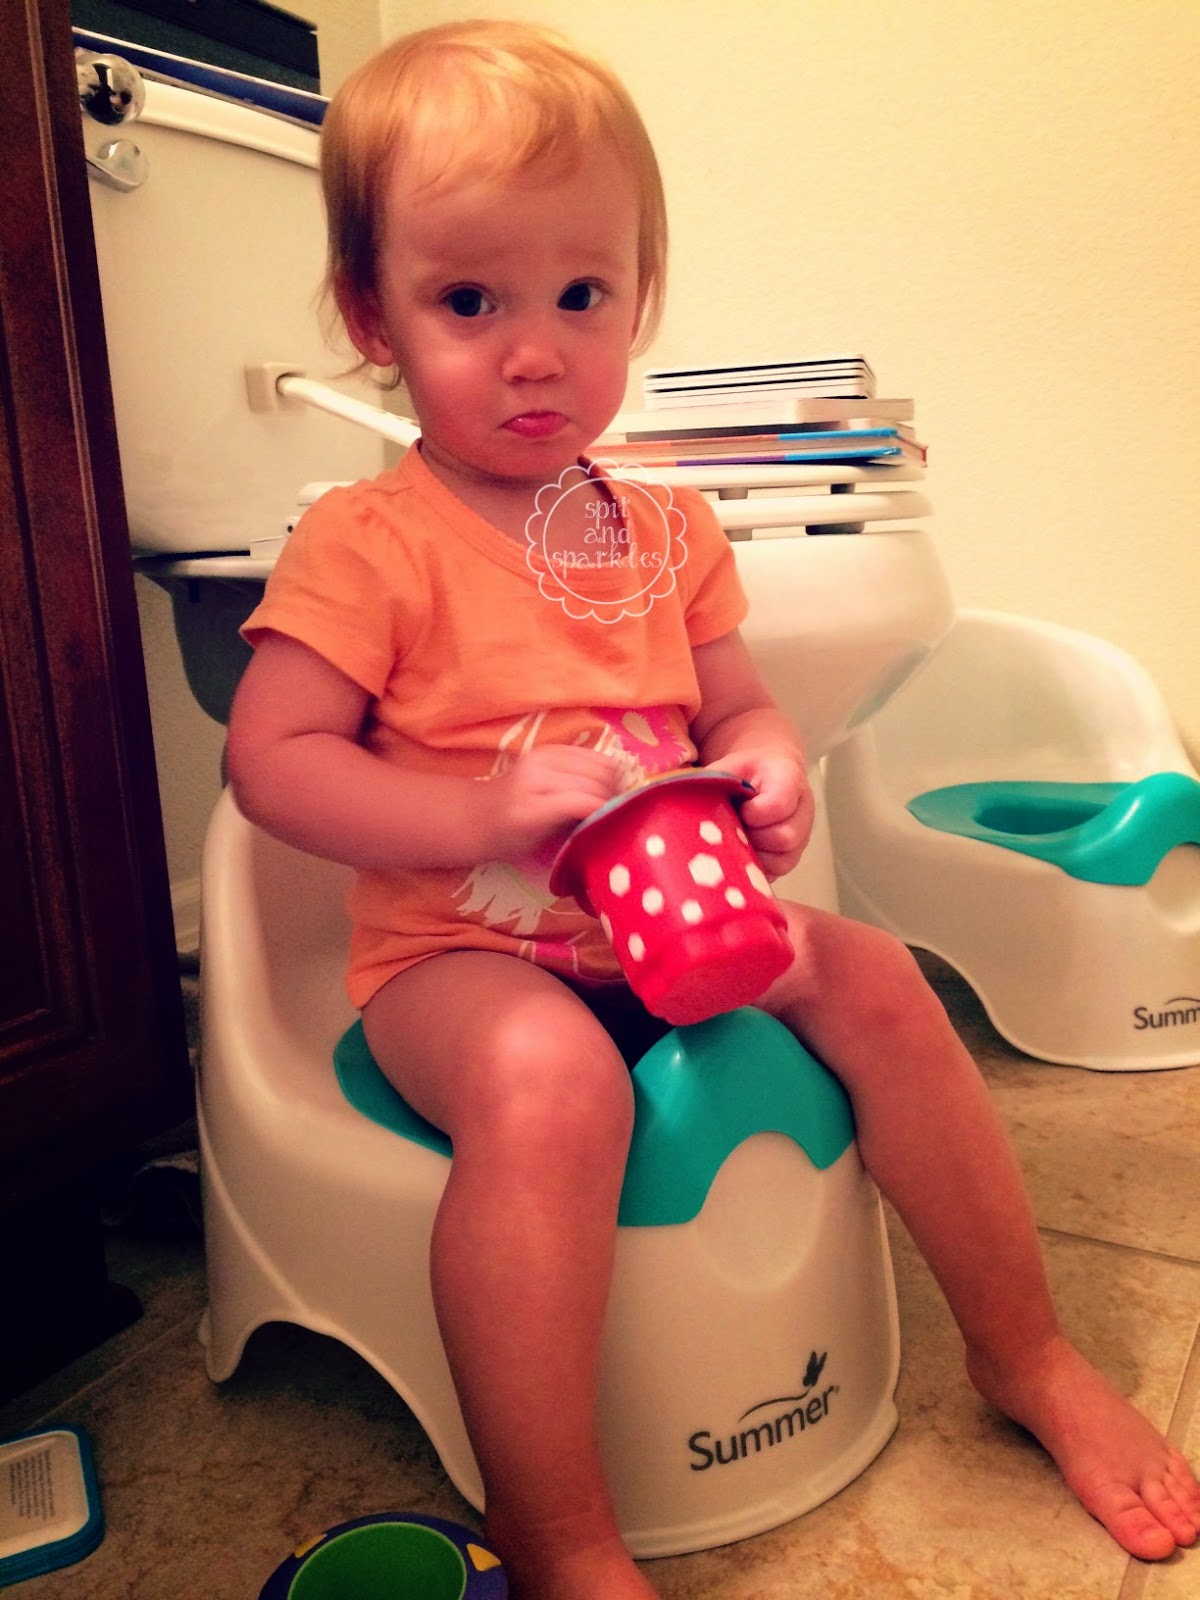 How to Keep Toddlers Entertained in the Bath #twins #Nuby #product review #bath